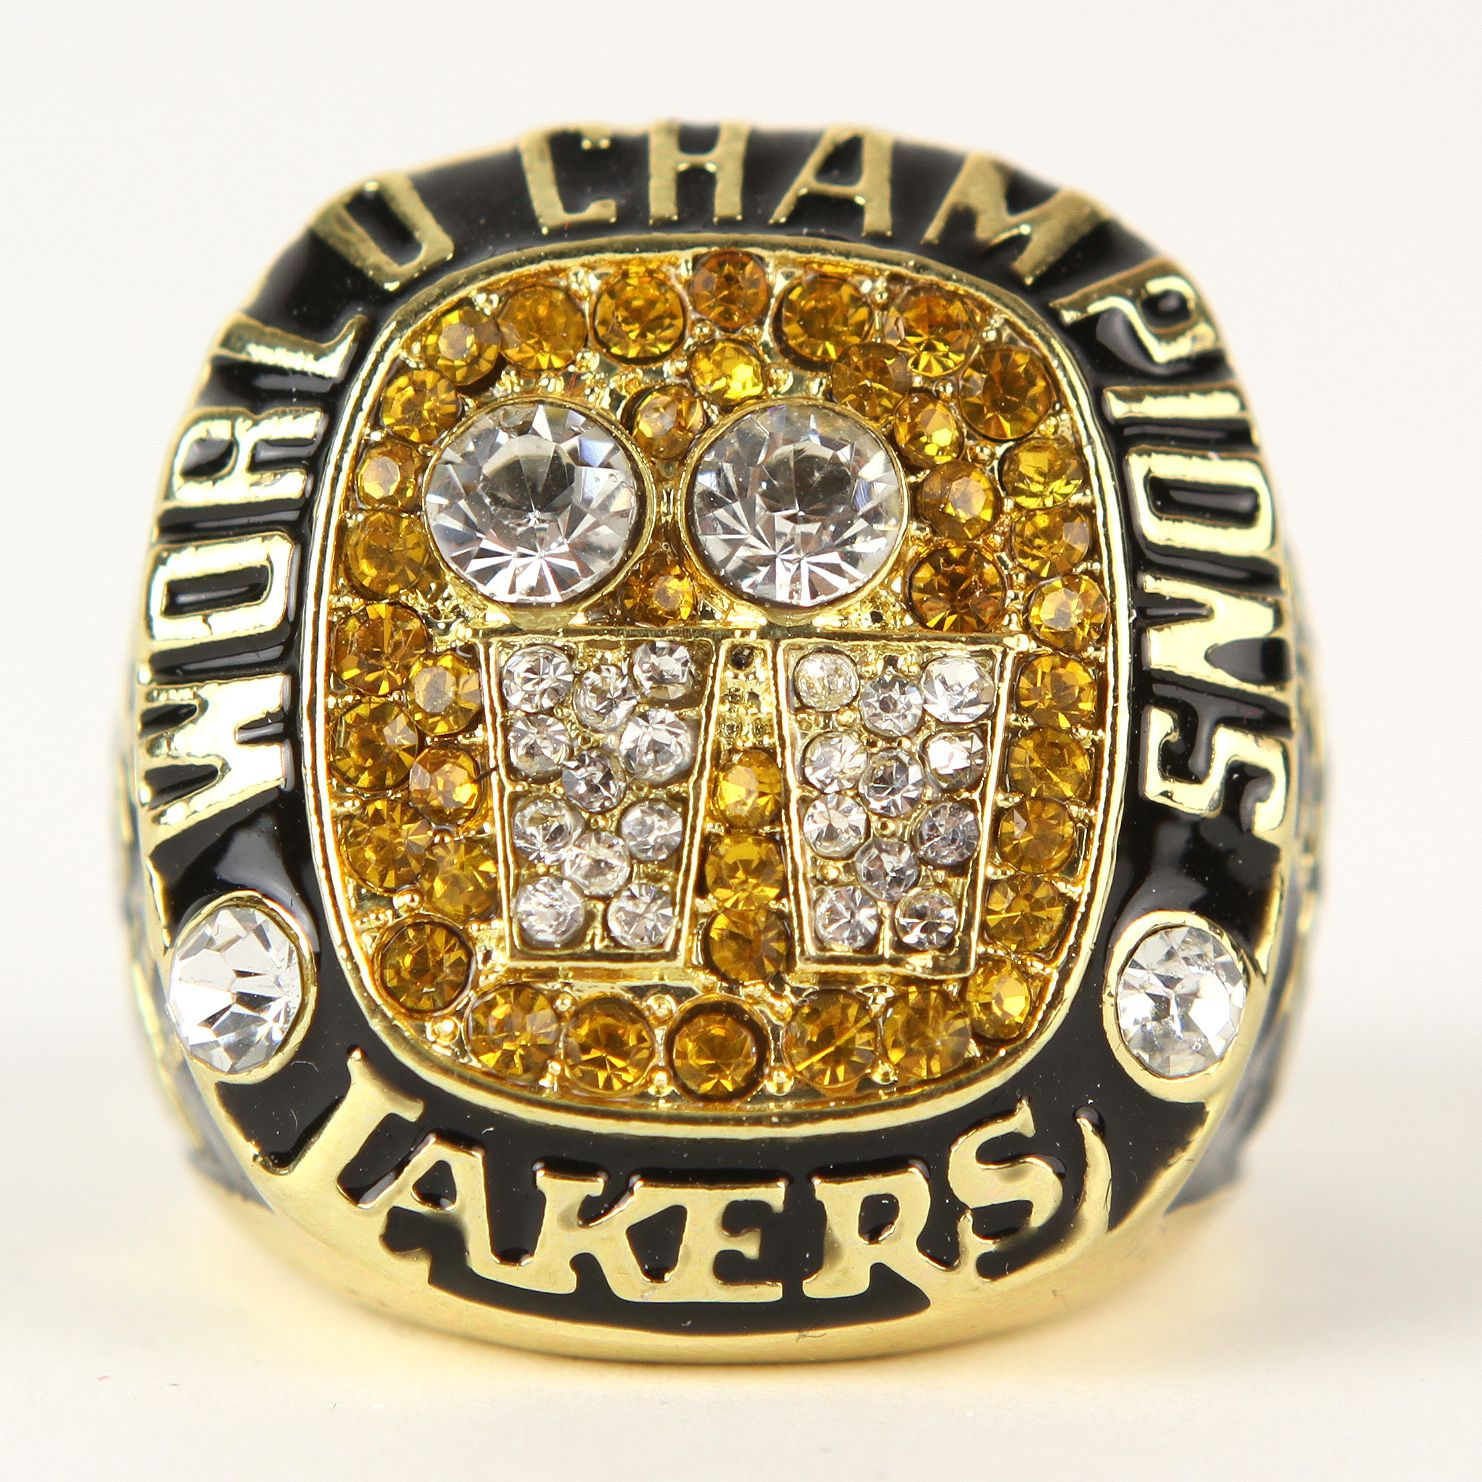 how to make a nba championship ring